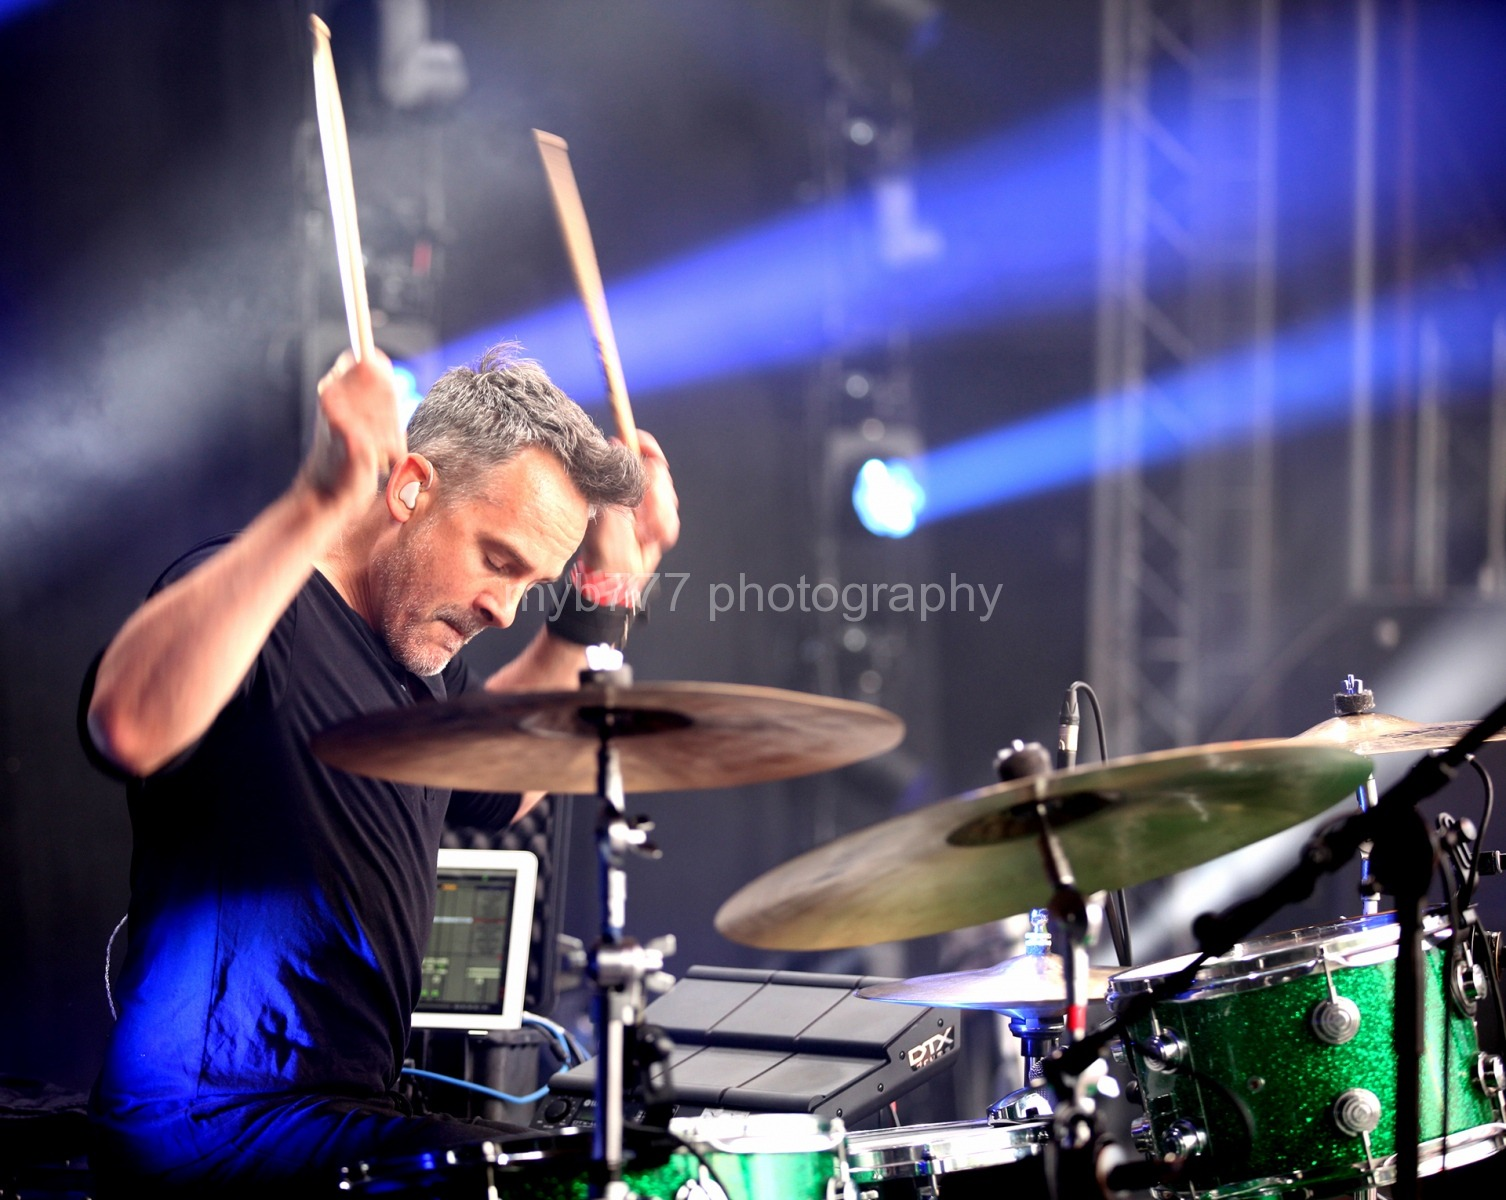 Drummer-Photography-by-myb777-43